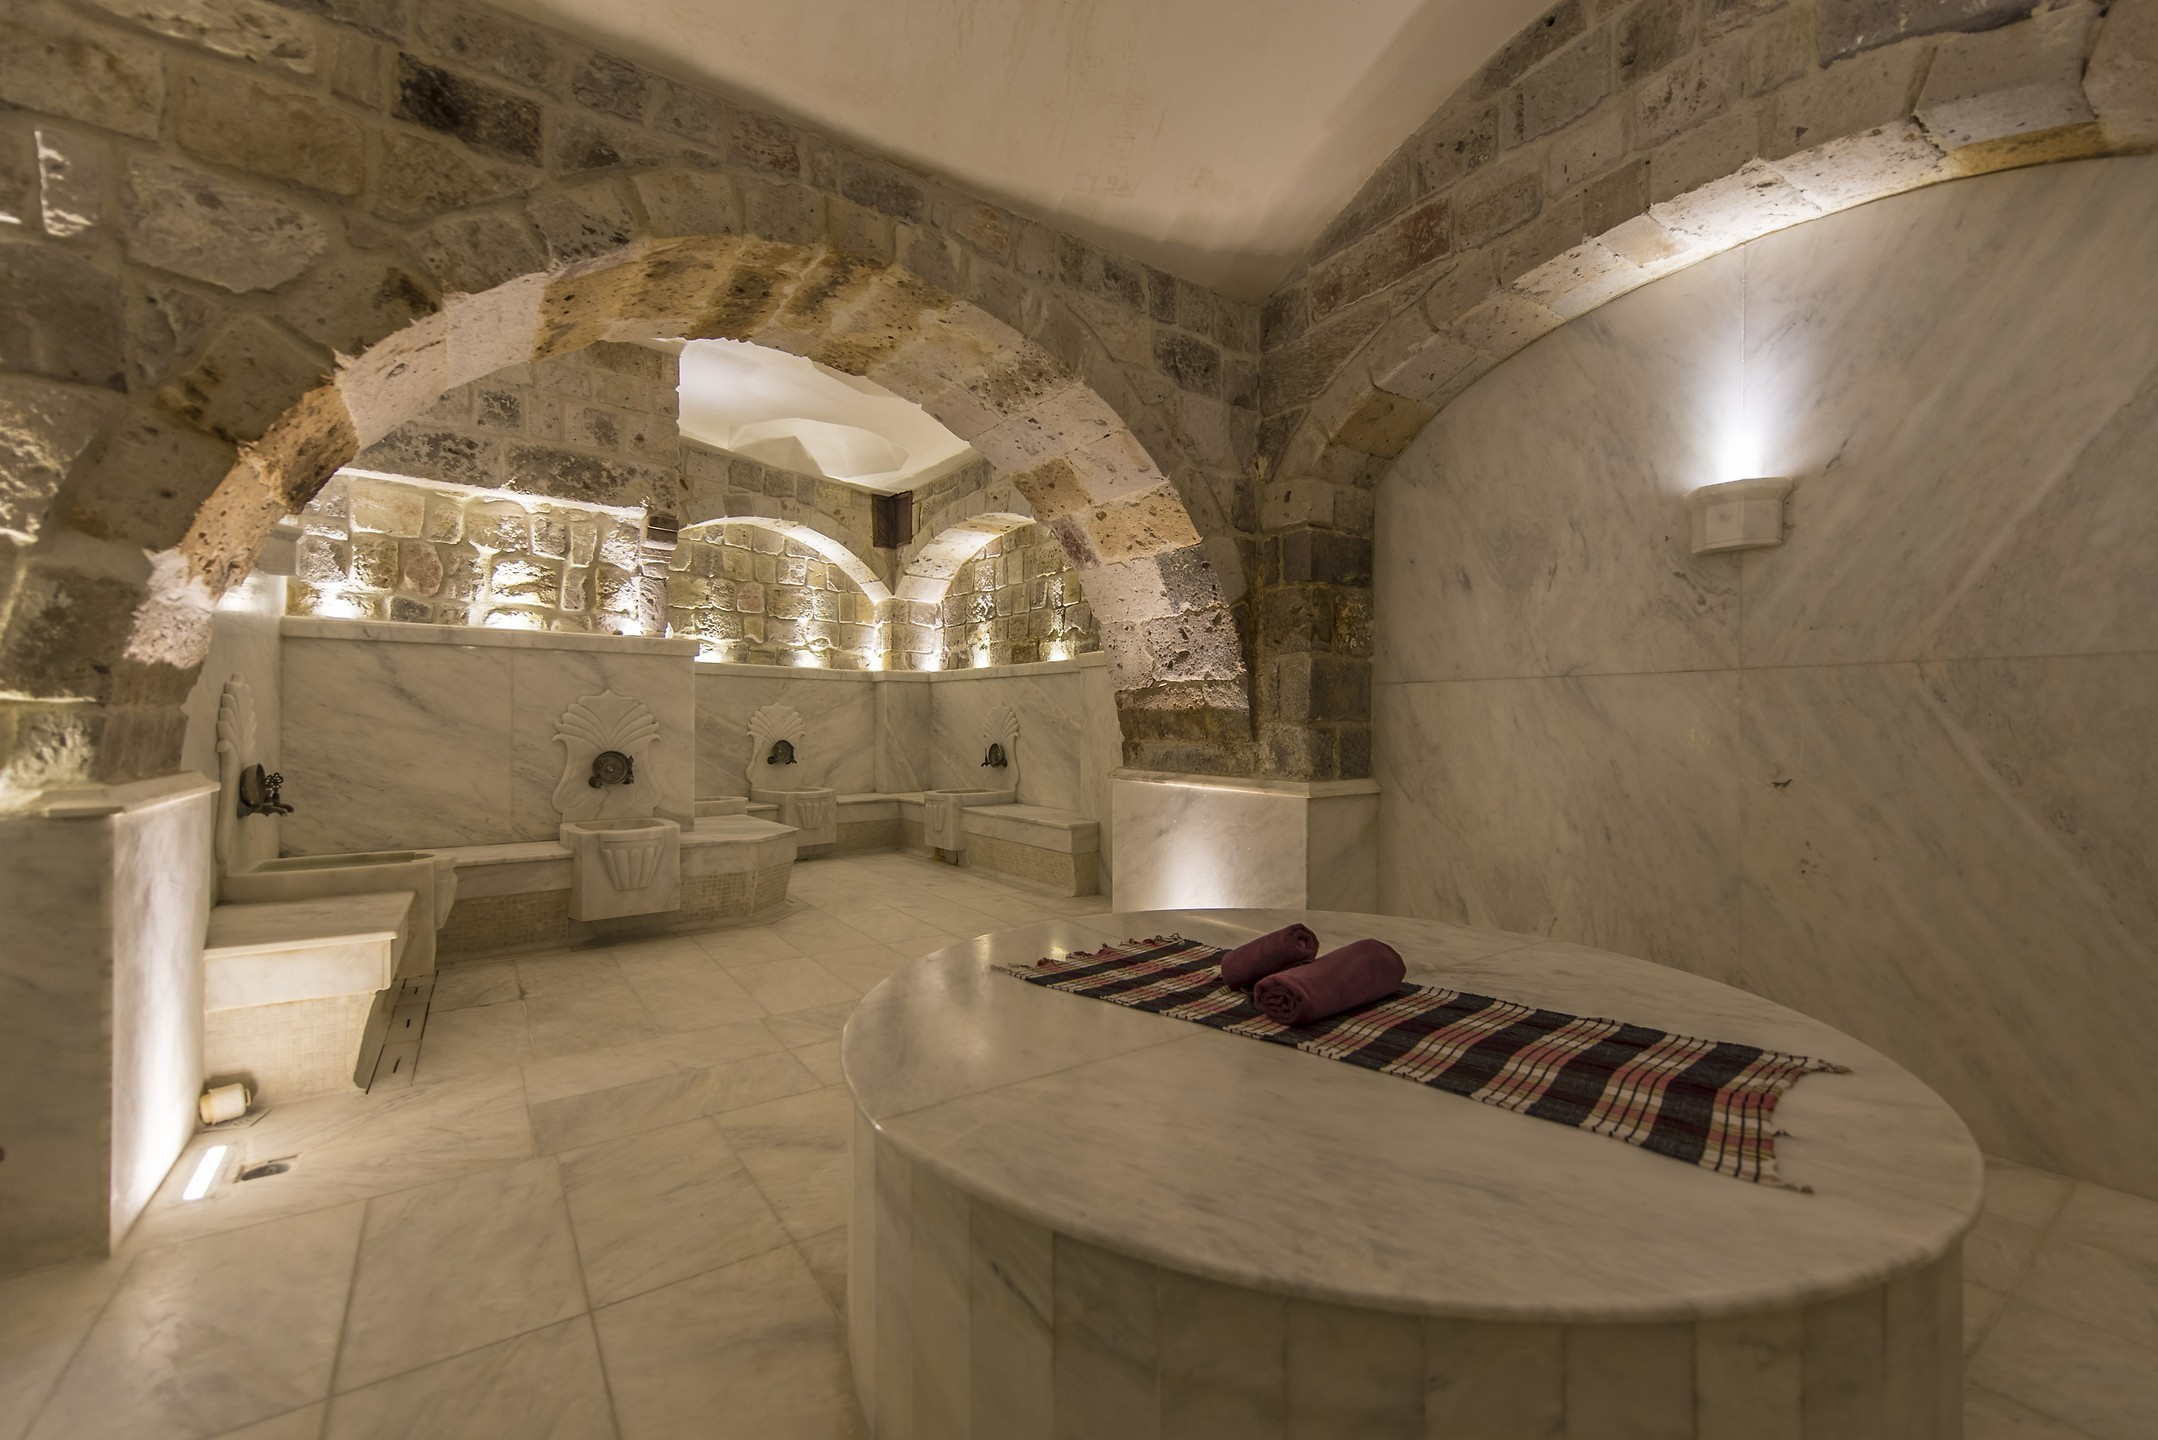 Anatolian-Houses-Cave-Hotel-Genel-212915